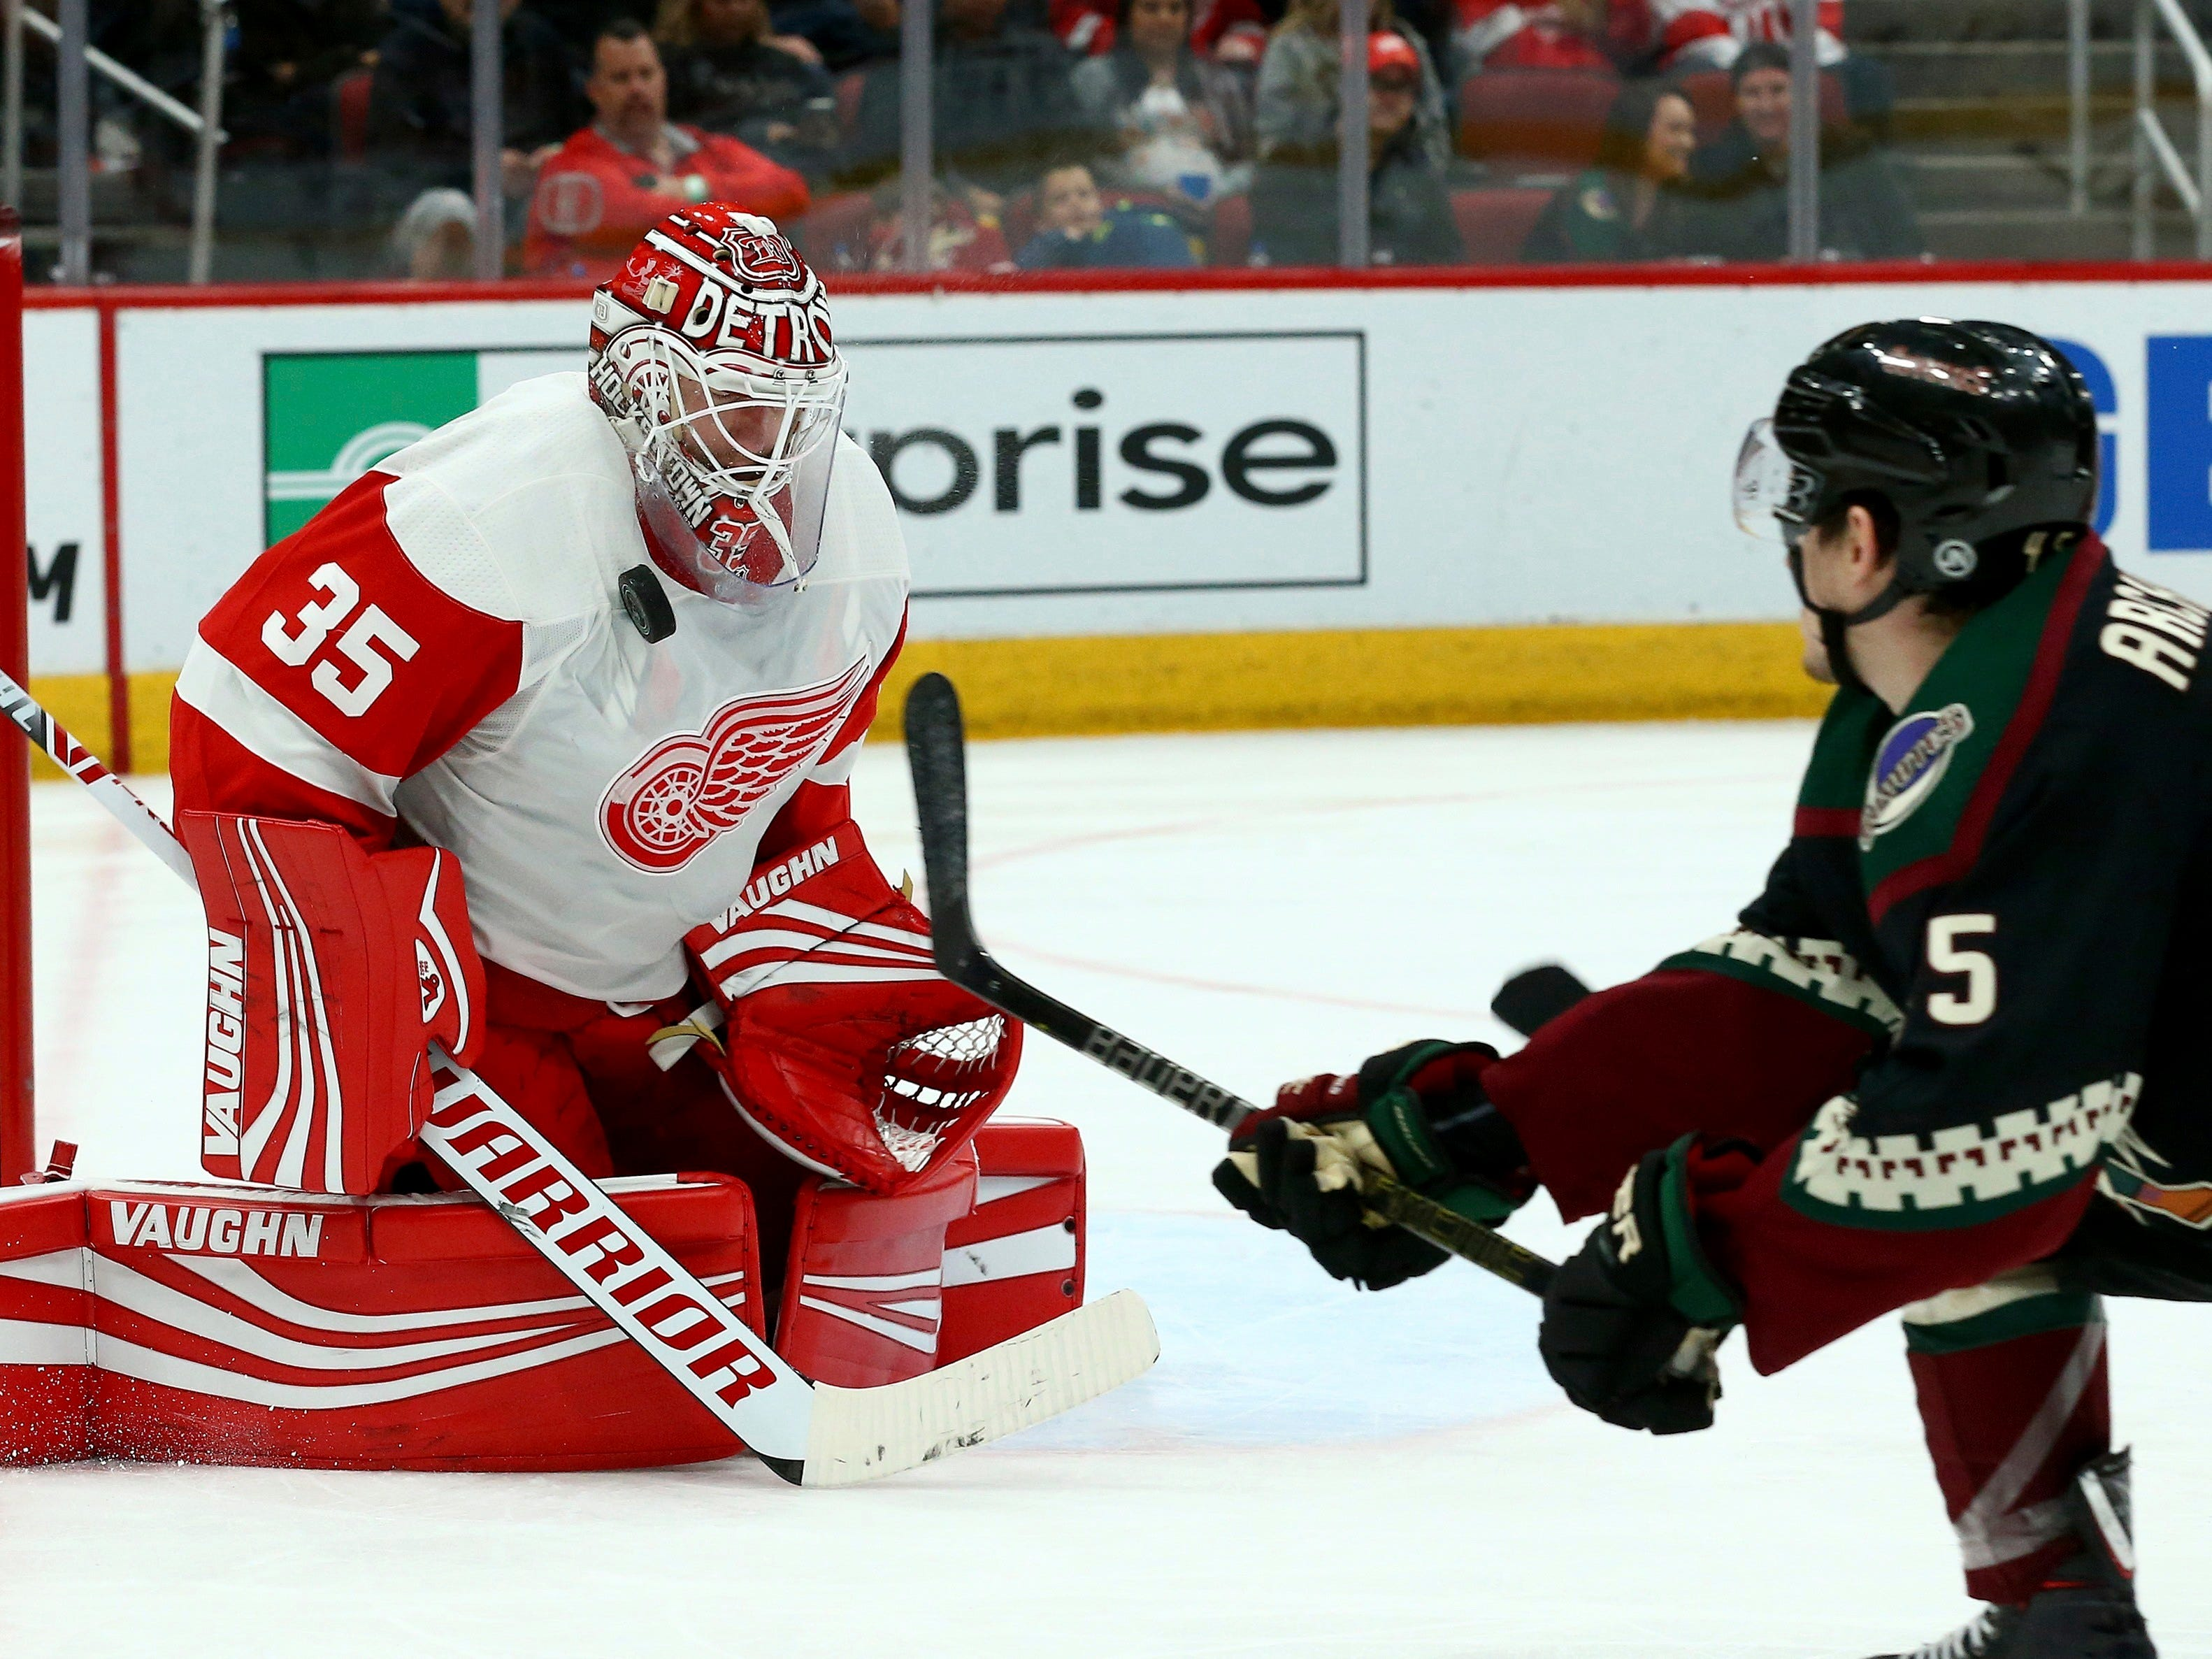 Detroit Red Wings goaltender Jimmy Howard (35) makes a save on a shot by Arizona Coyotes right wing Josh Archibald, right, during the second period Saturday, March 2, 2019, in Glendale, Ariz. (AP Photo/Ross D. Franklin)